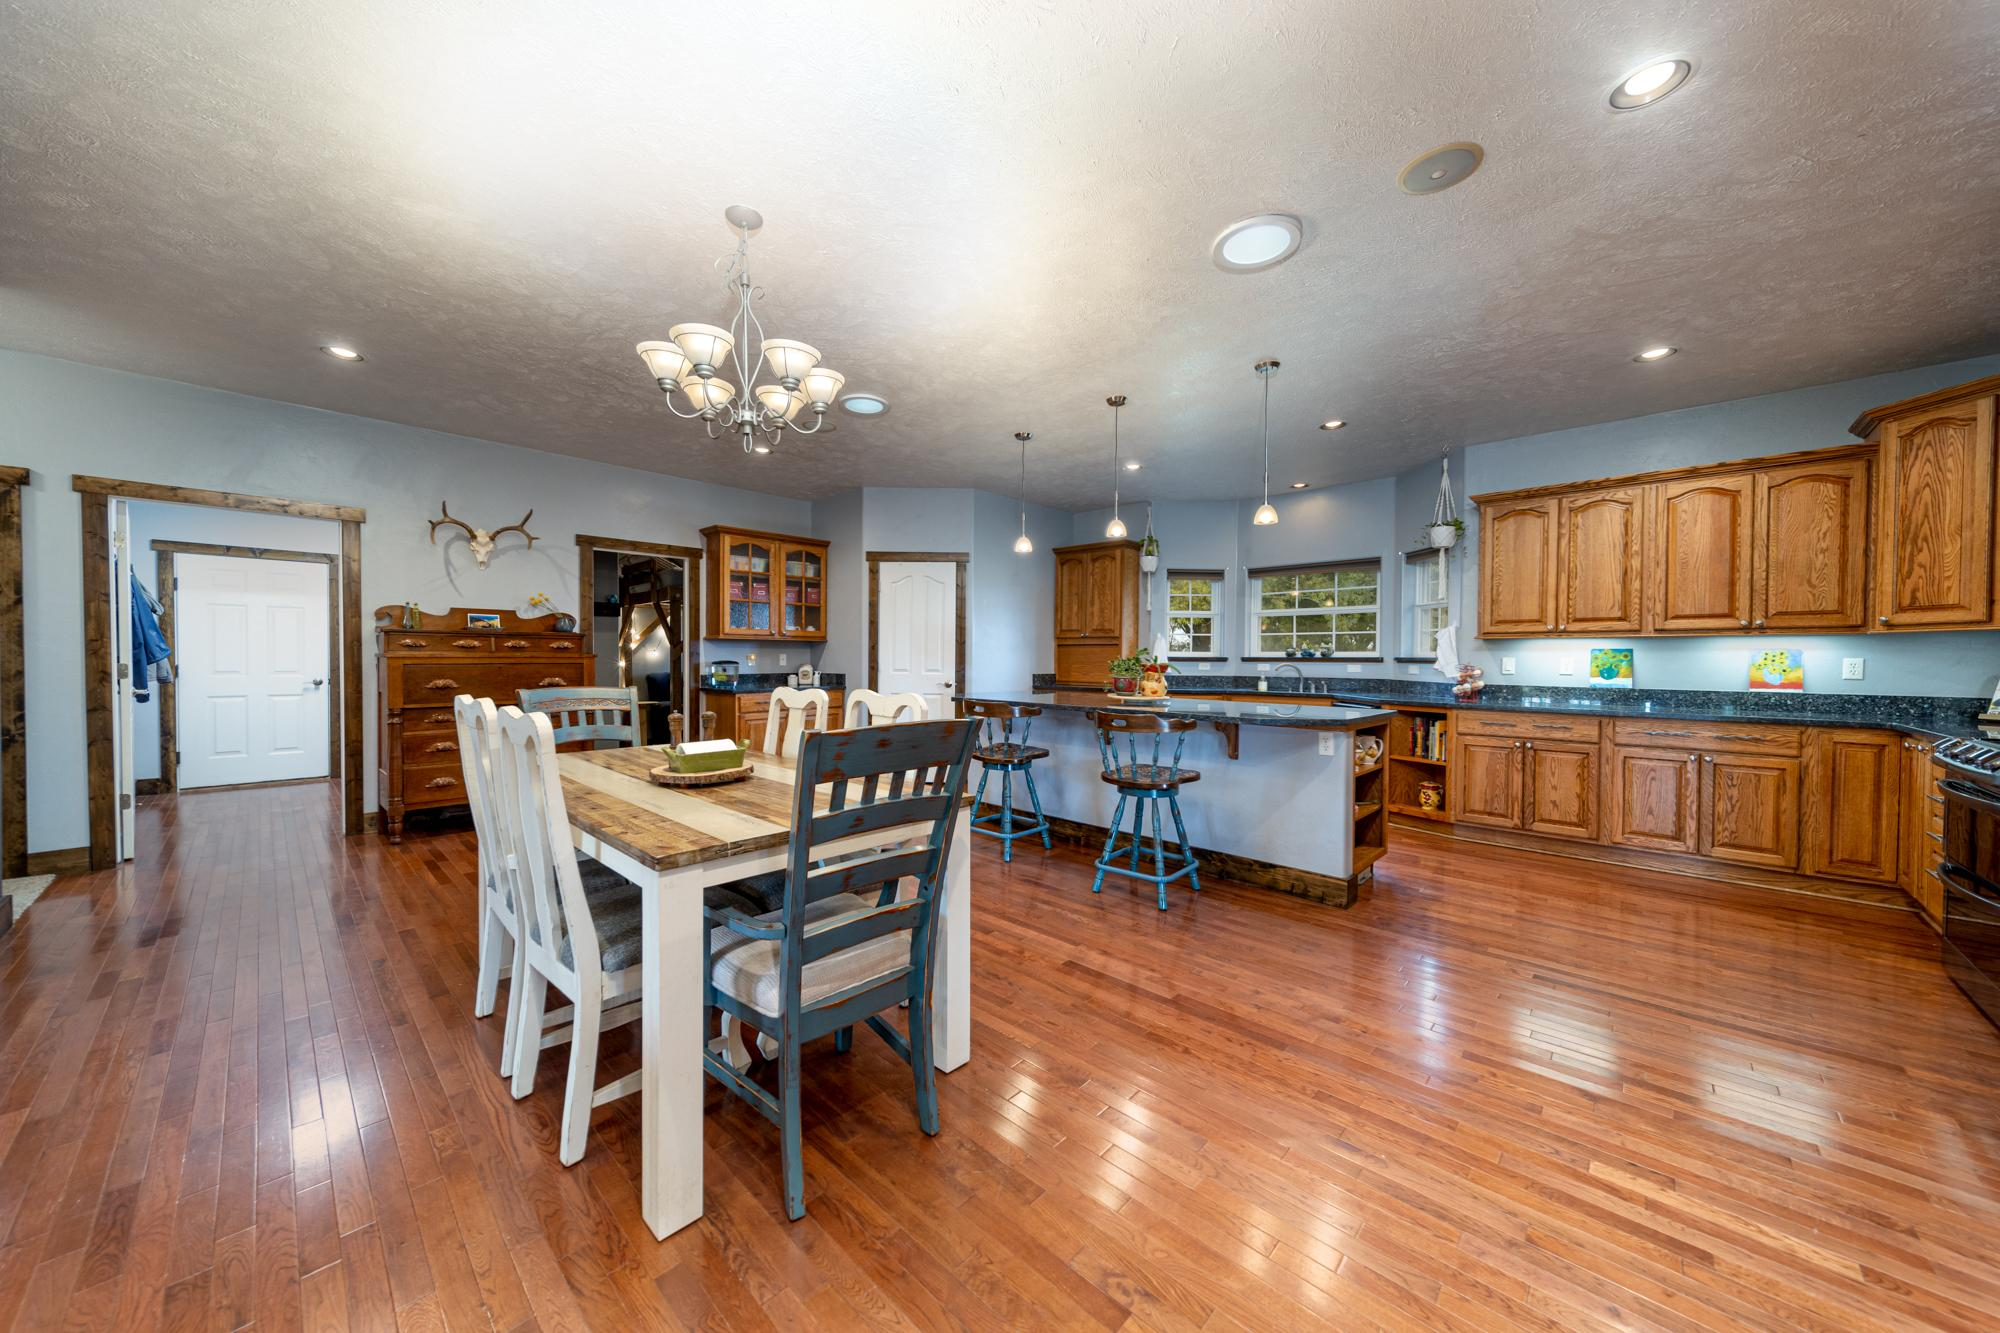 Large Dining and Kitchen Area - 12703 6100 Rd Montrose, CO 81403 - Atha Team Country Real Estate